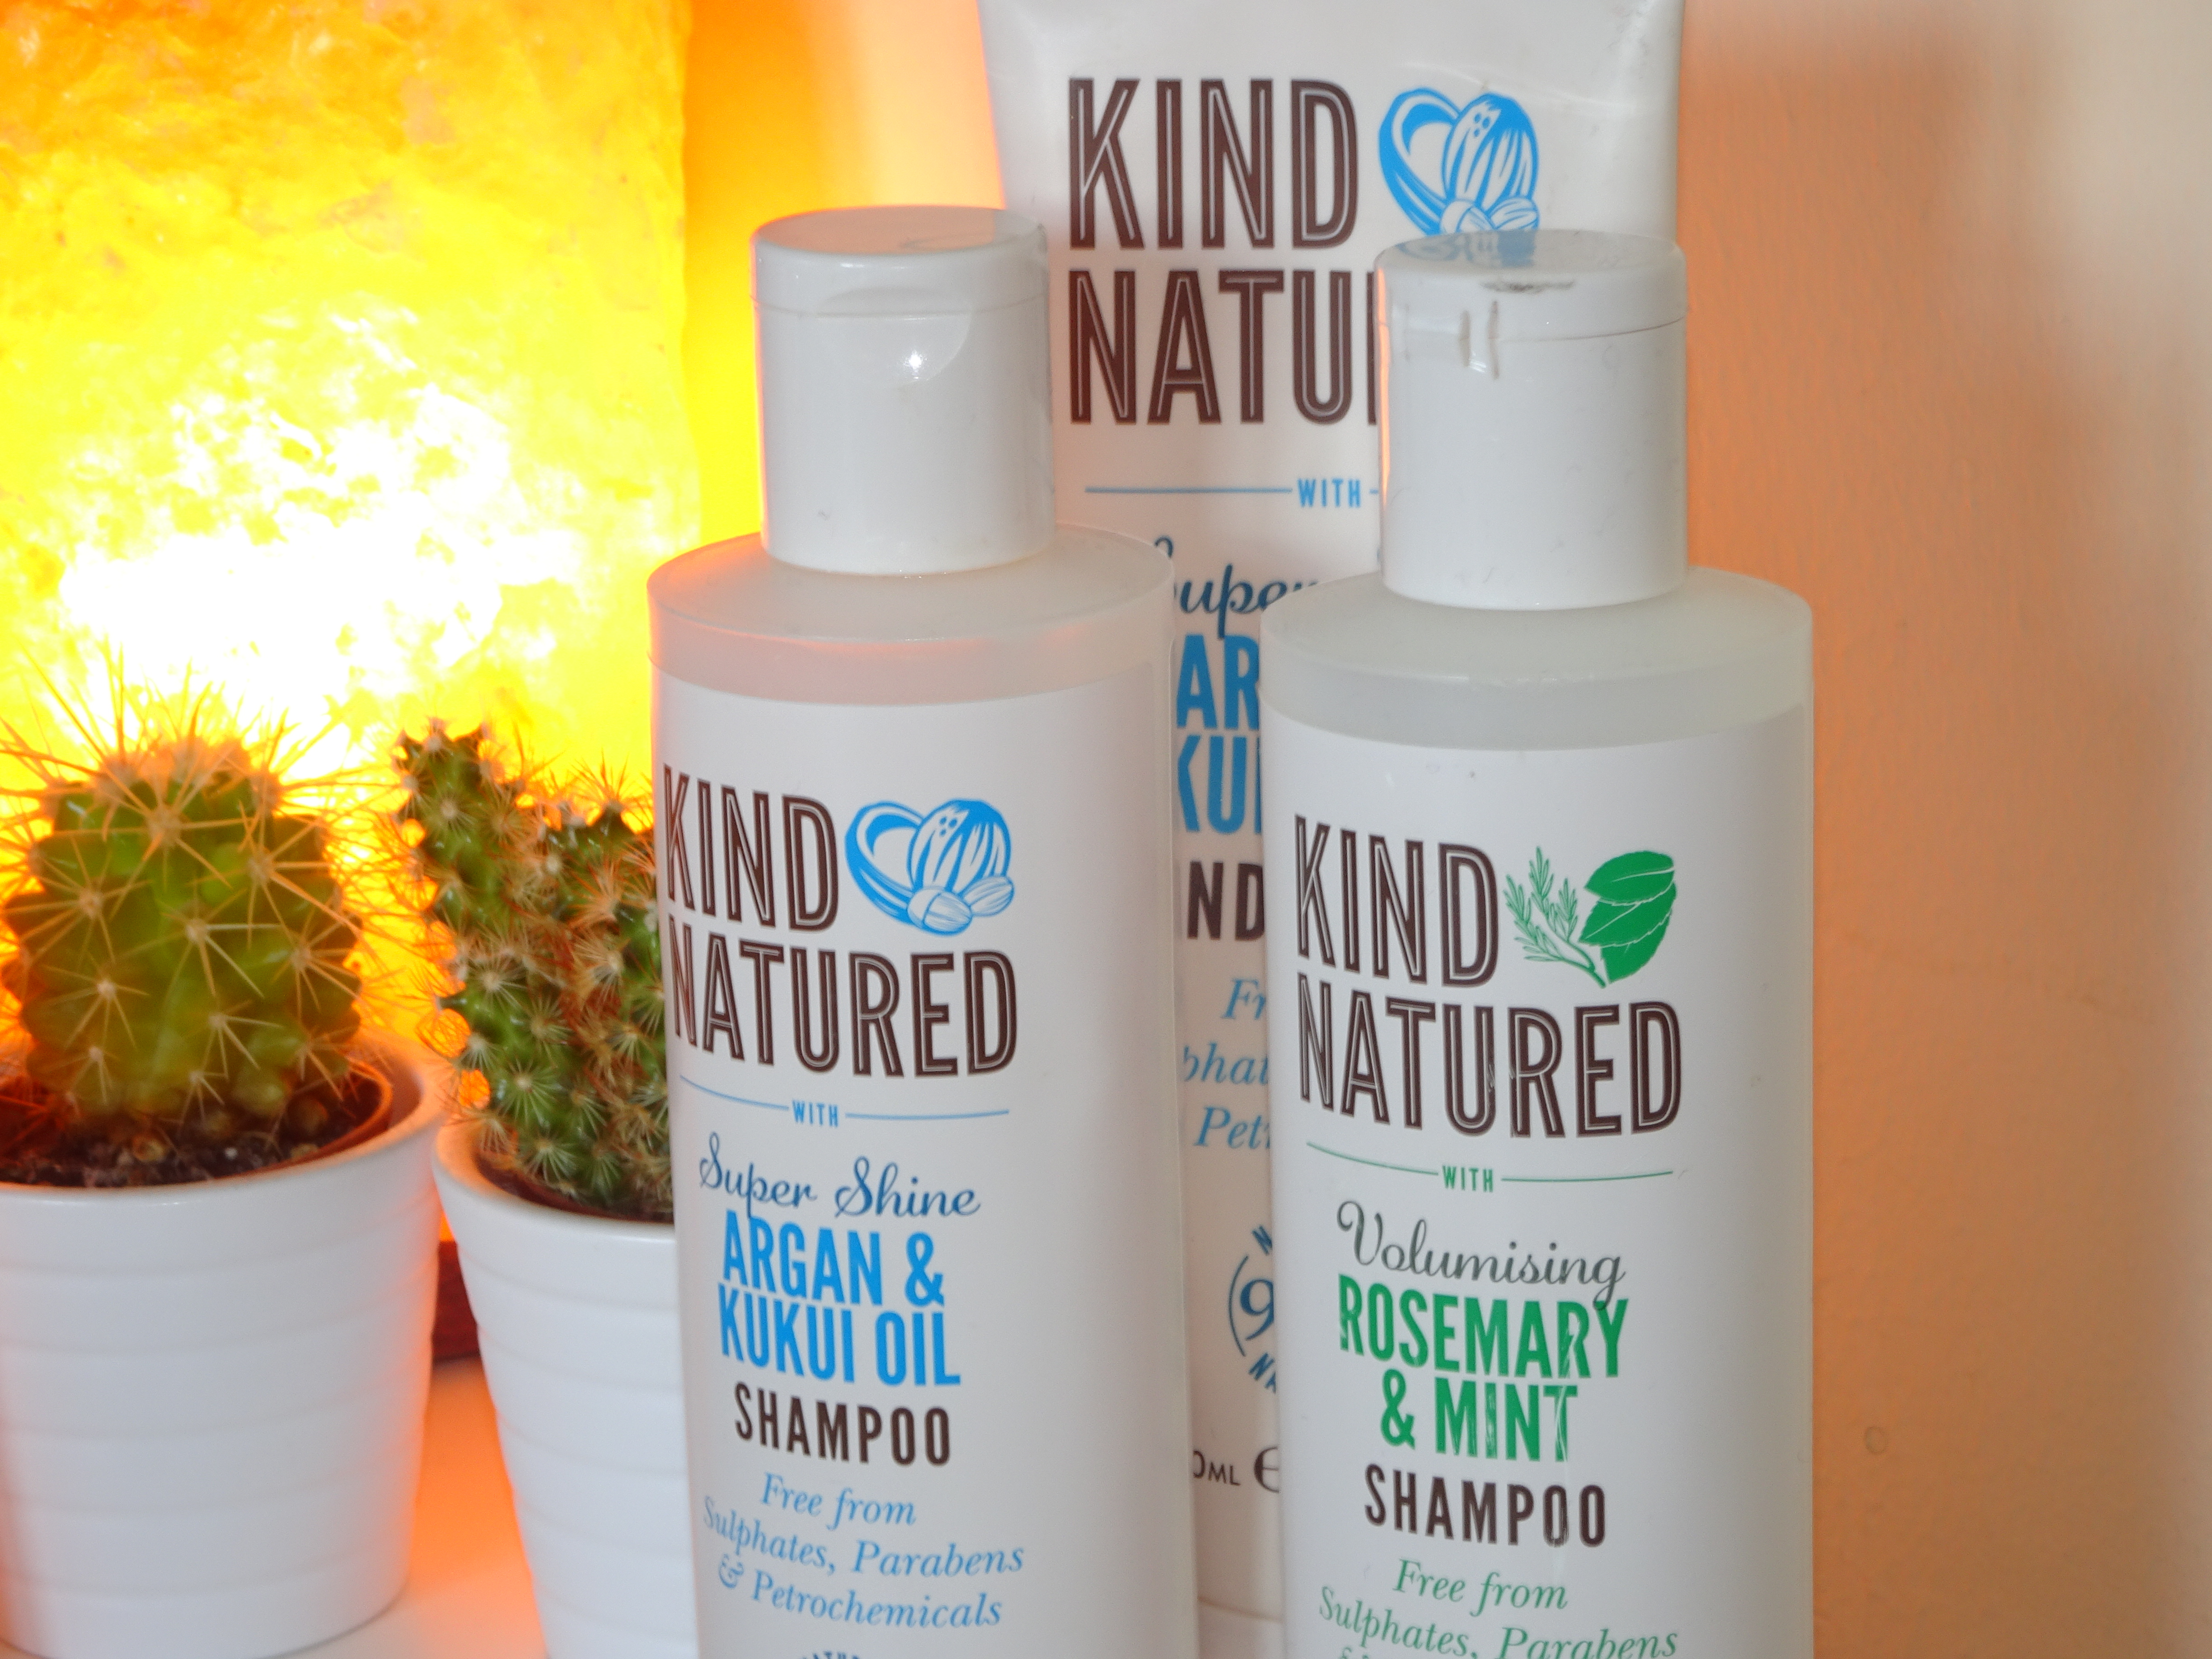 Kind Natured shampoo and conditioner